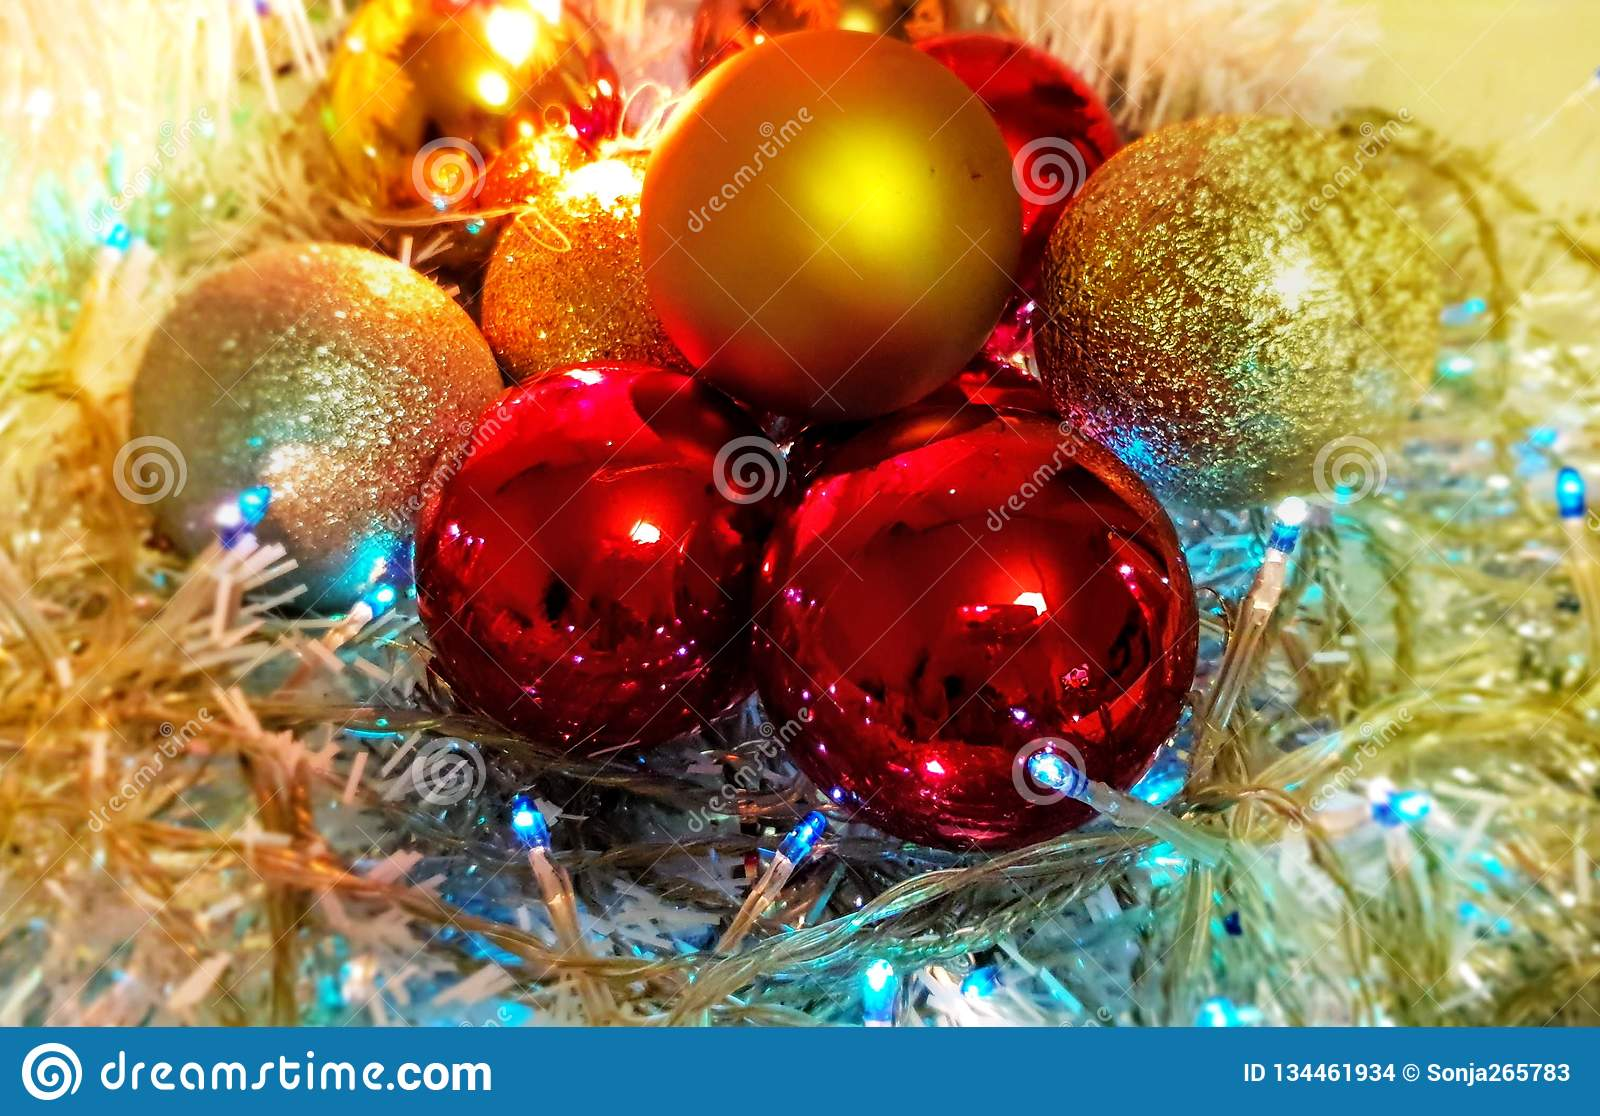 Colorful Christmas Decoration Ideas Red Blue Gold Silver Balls Silver Garland Christmas Light Decoration Illumination Ideas Stock Photo Image Of White Lights 134461934